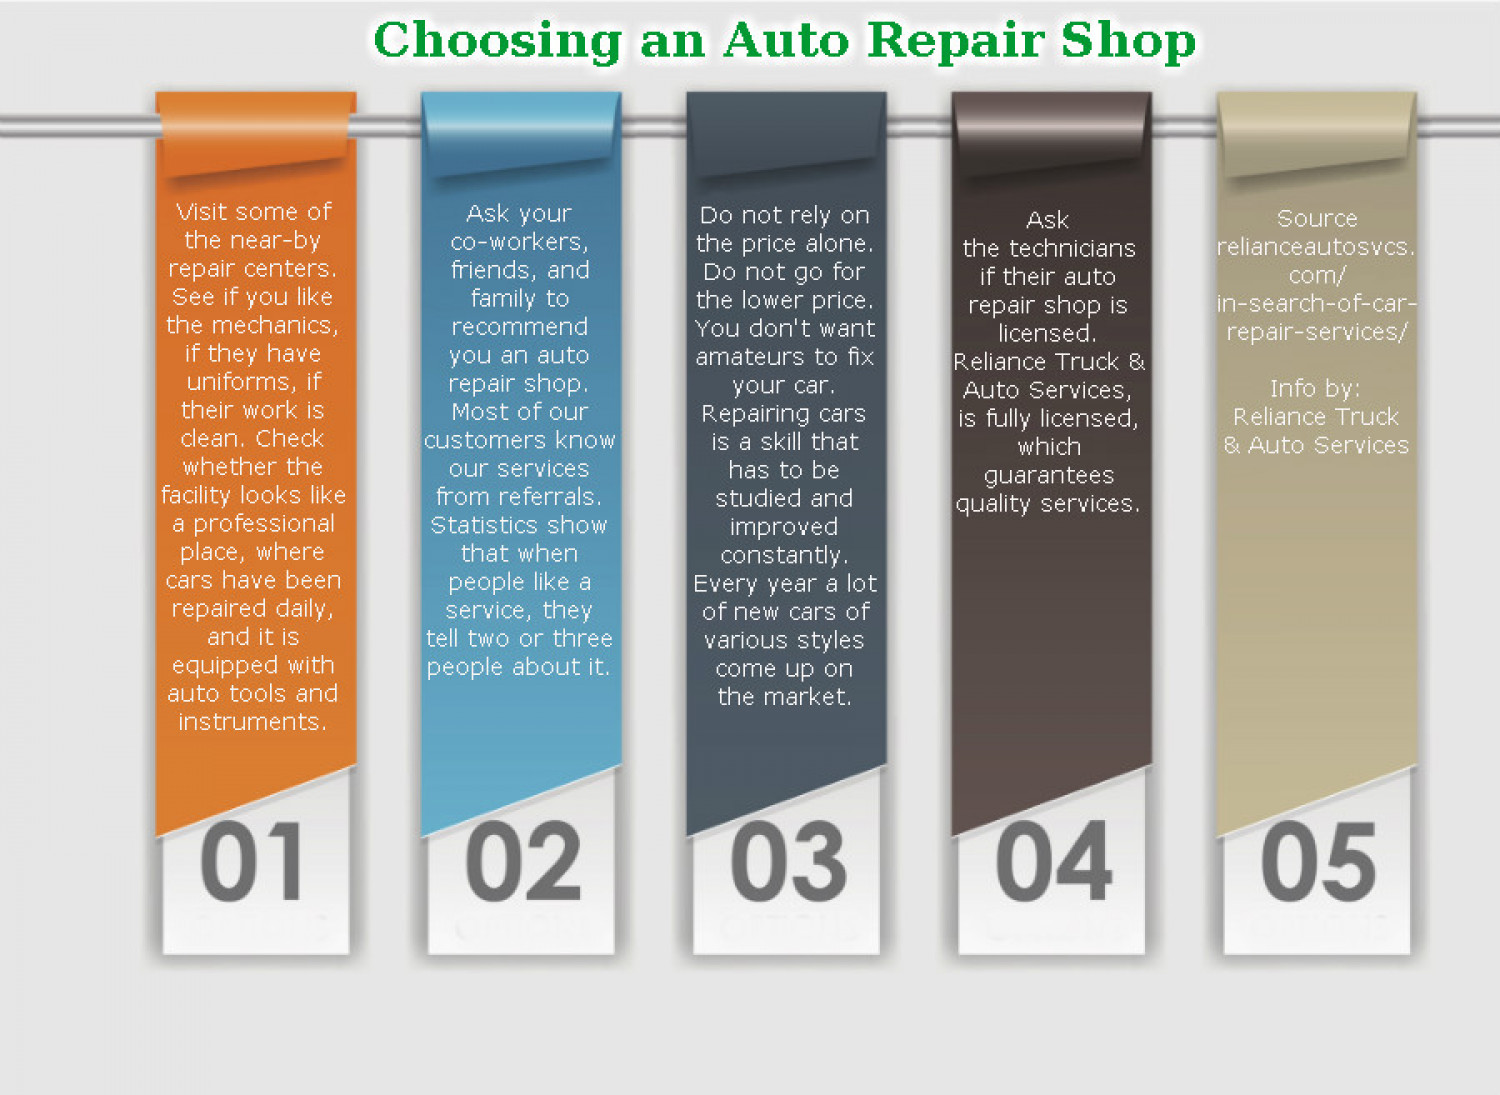 Choosing an Auto Repair Shop Infographic